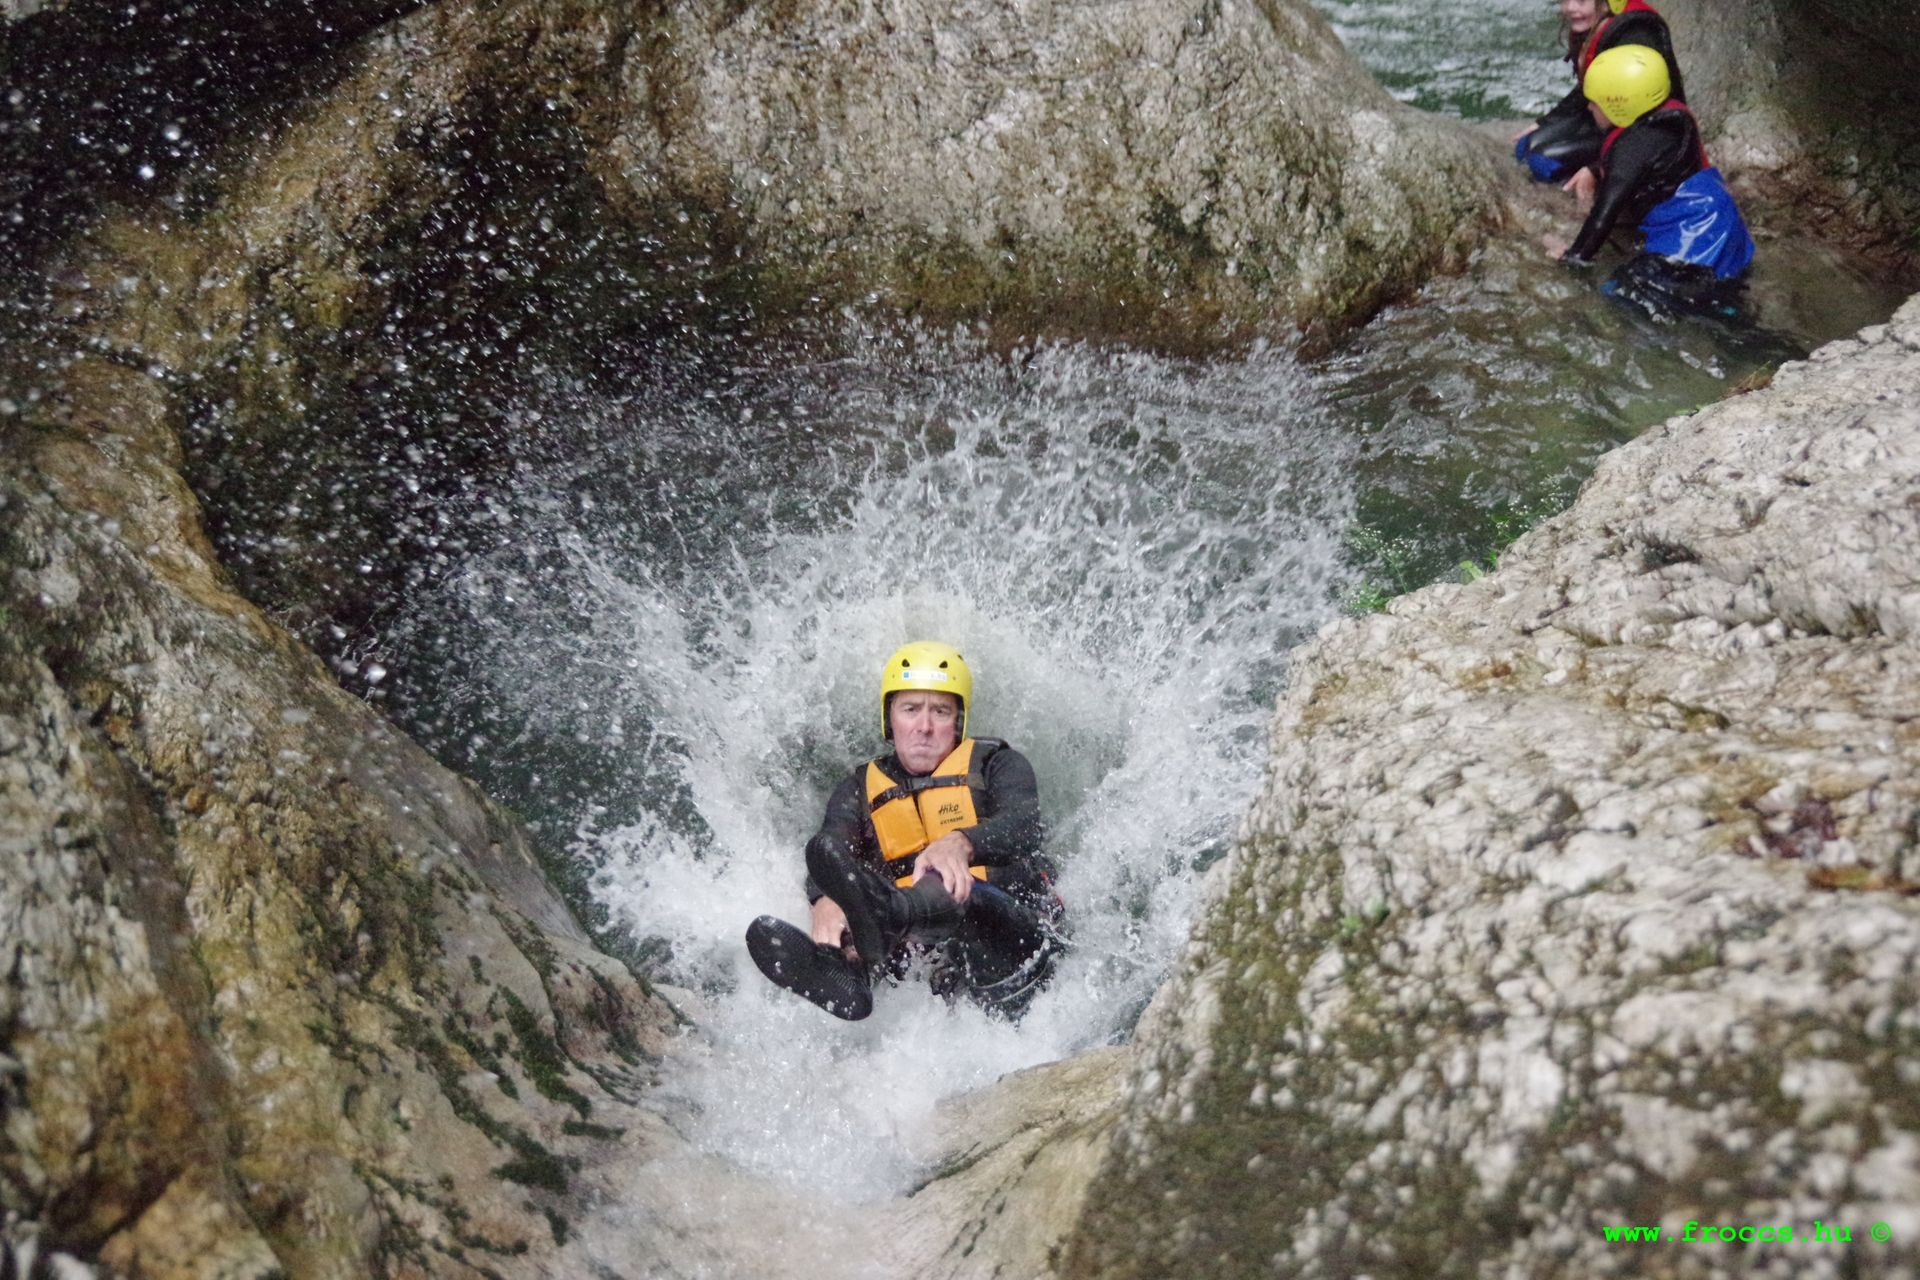 Rafting & Canyoning in der Nähe von Bovec Bovec, Slowenien #3936c4ed-ba39-4f86-8c99-fd5ef837ce12